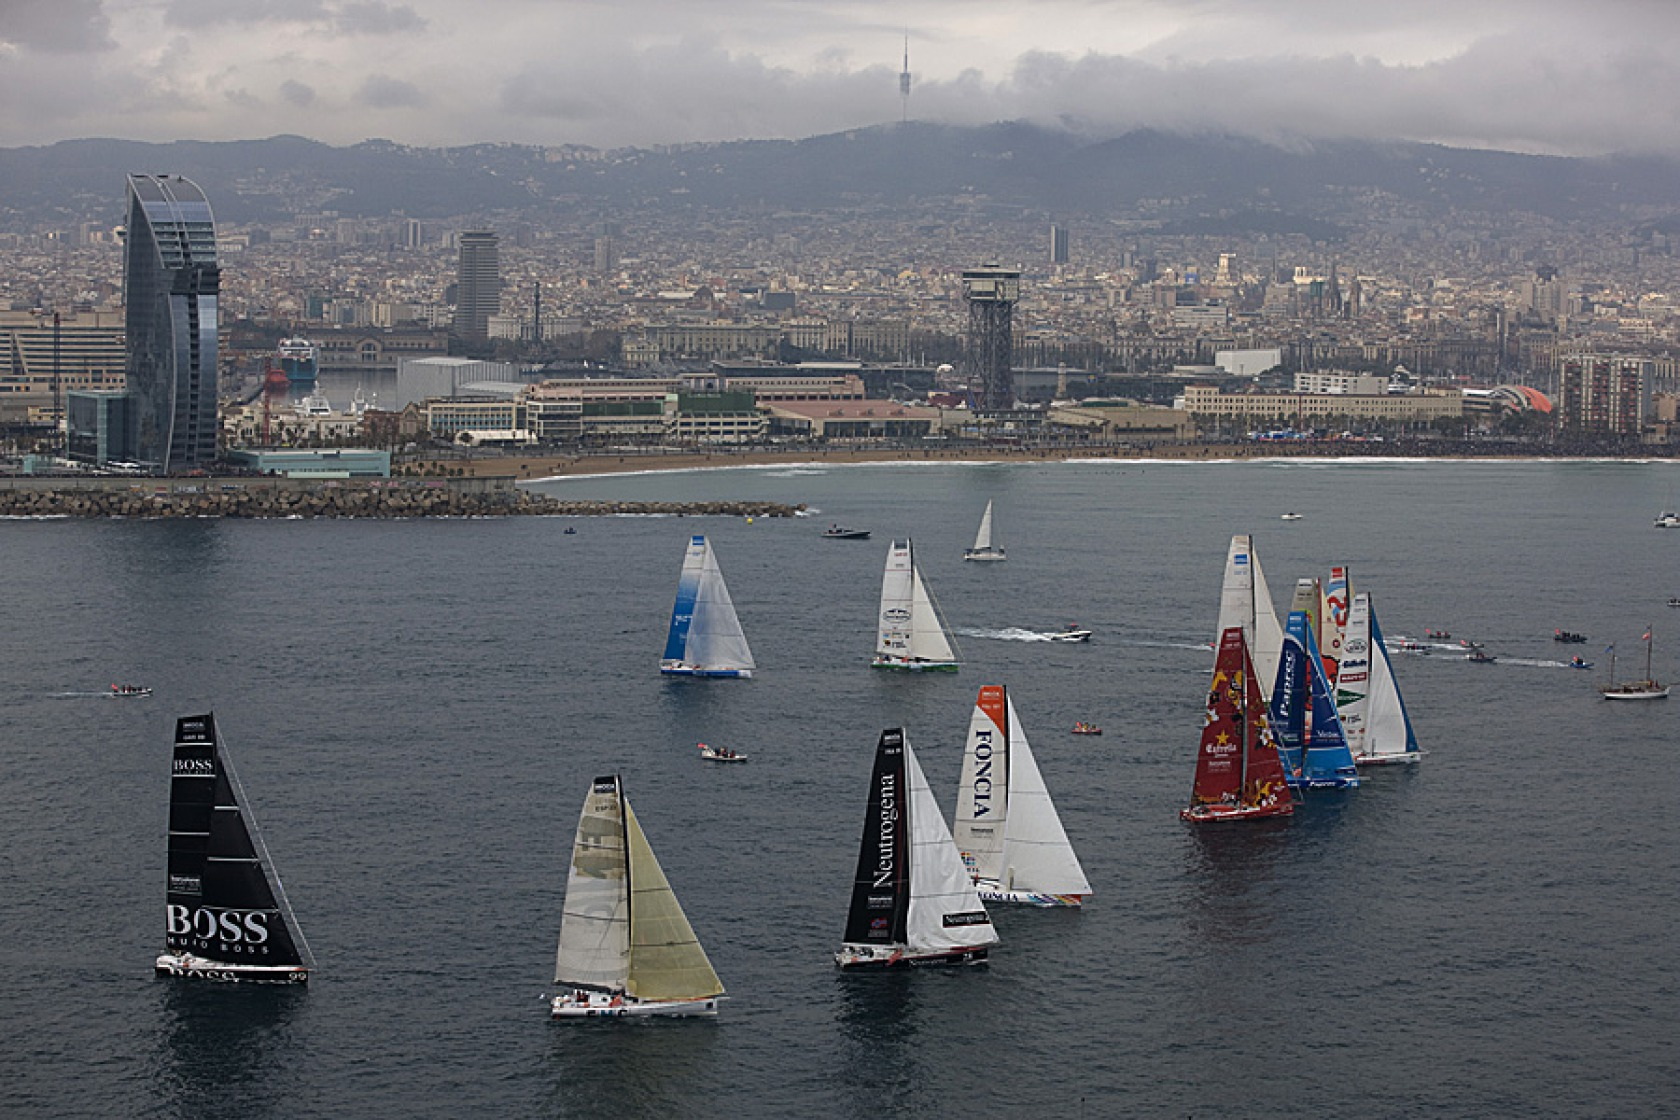 Départ de la Barcelona World Race 2010-2011